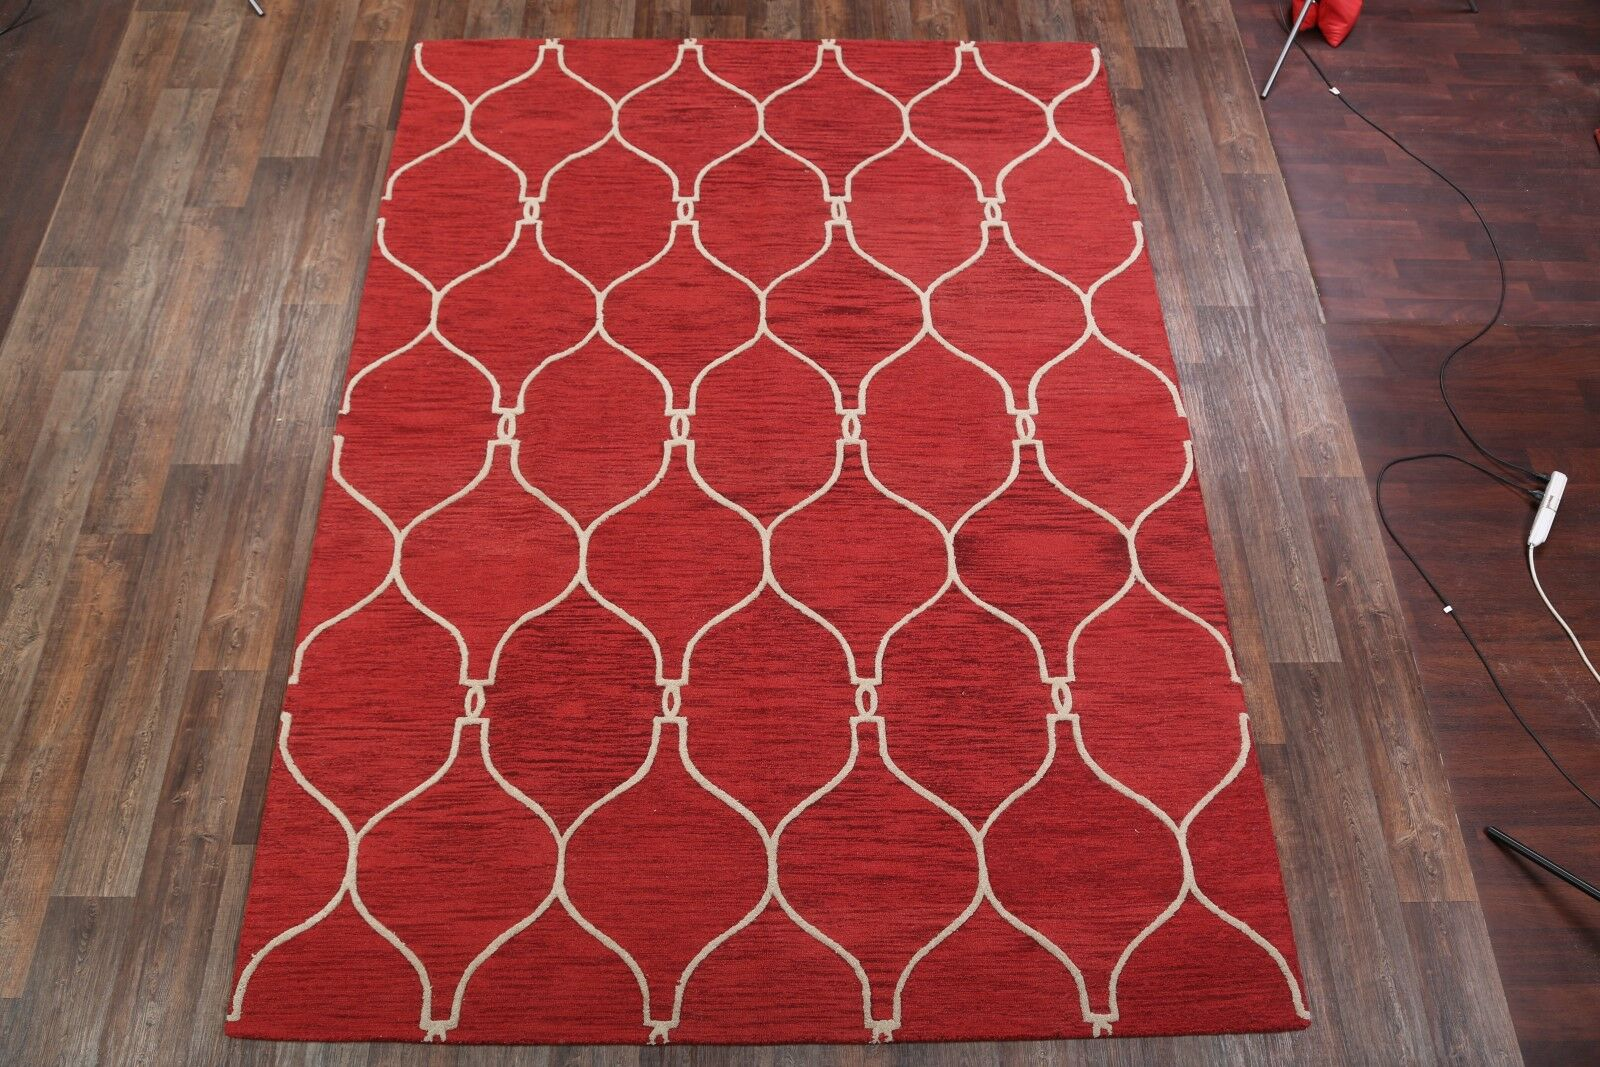 Huckleberry Moroccan Trellis Oriental Hand-Tufted Wool Red/Burgundy Area Rug Rug Size: Rectangle 8' x 10'